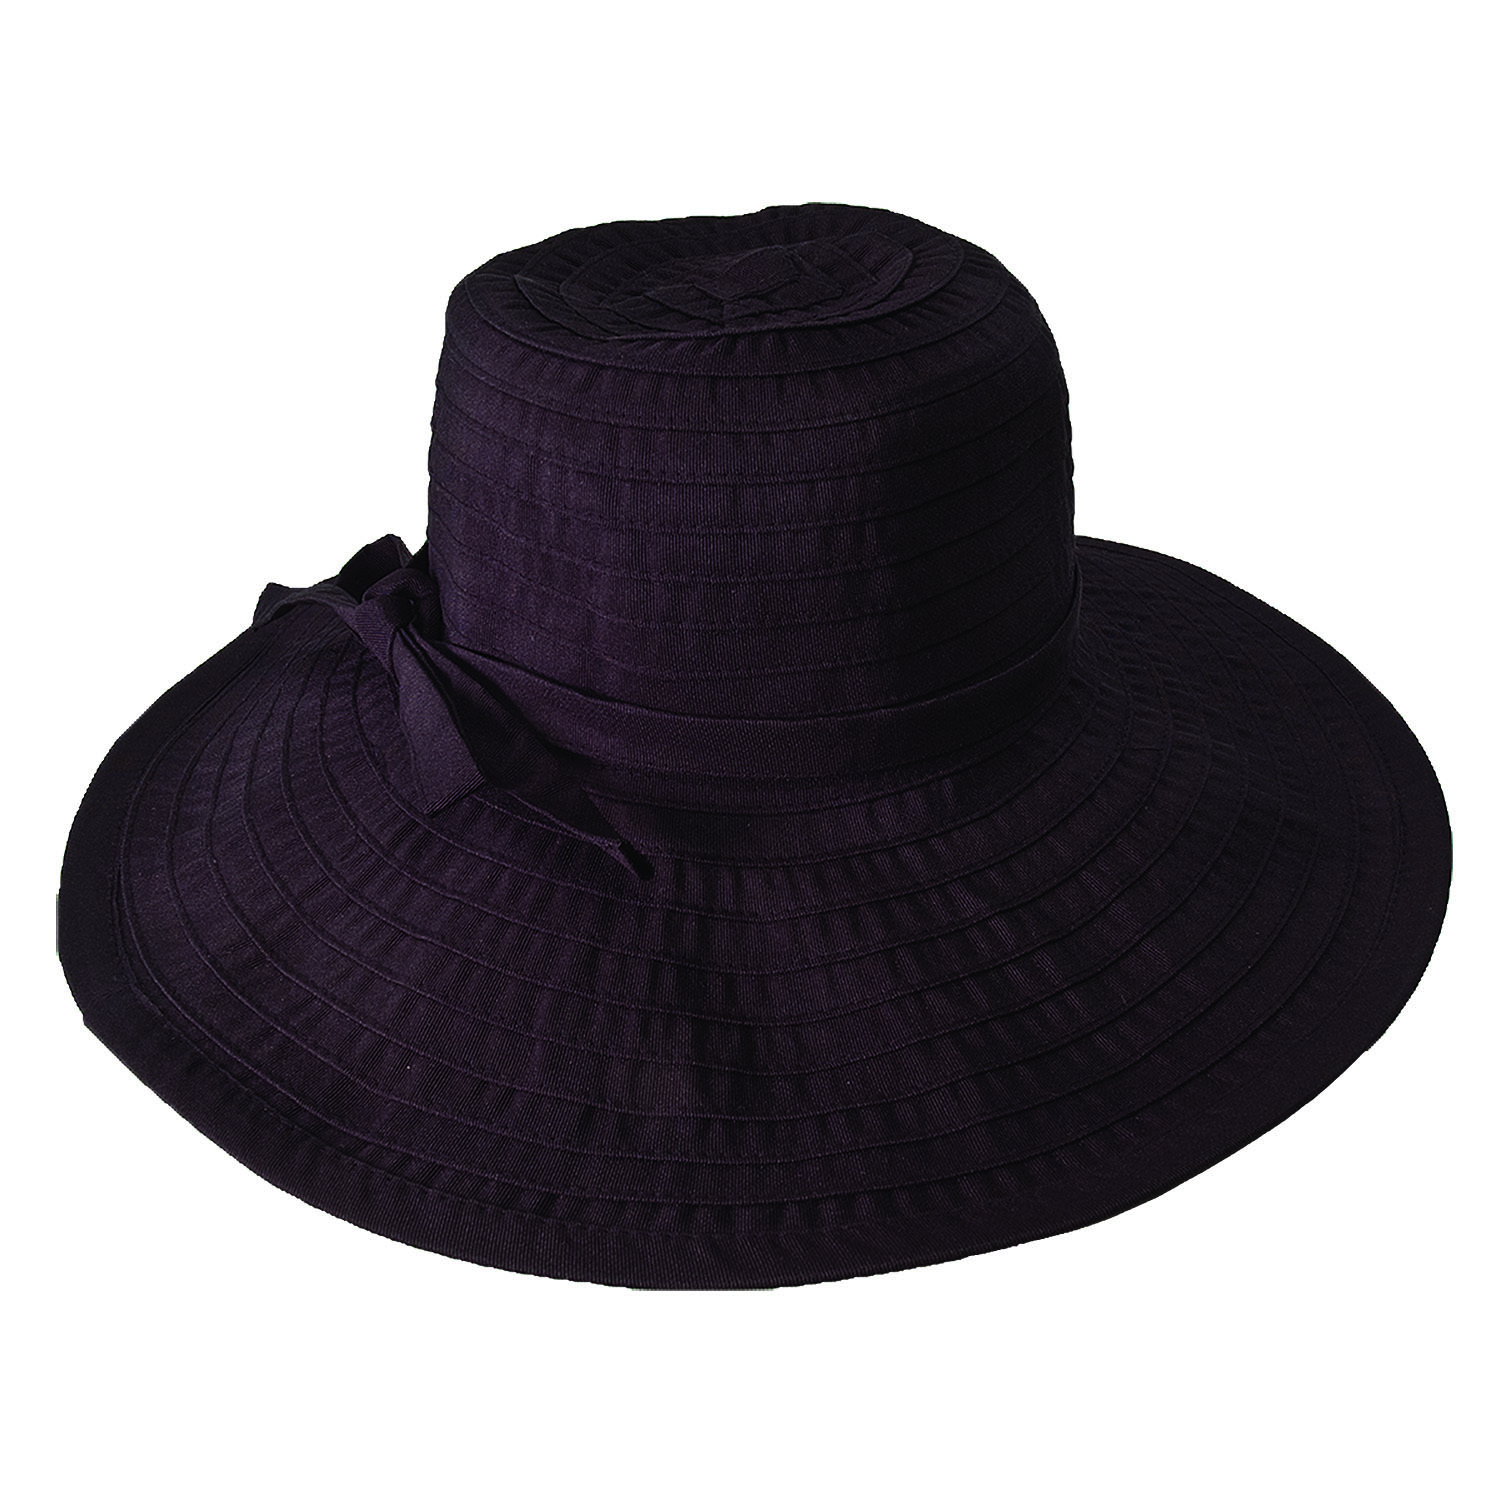 HS238 - Black hat ribbon crusher hat by hat.a.girl®